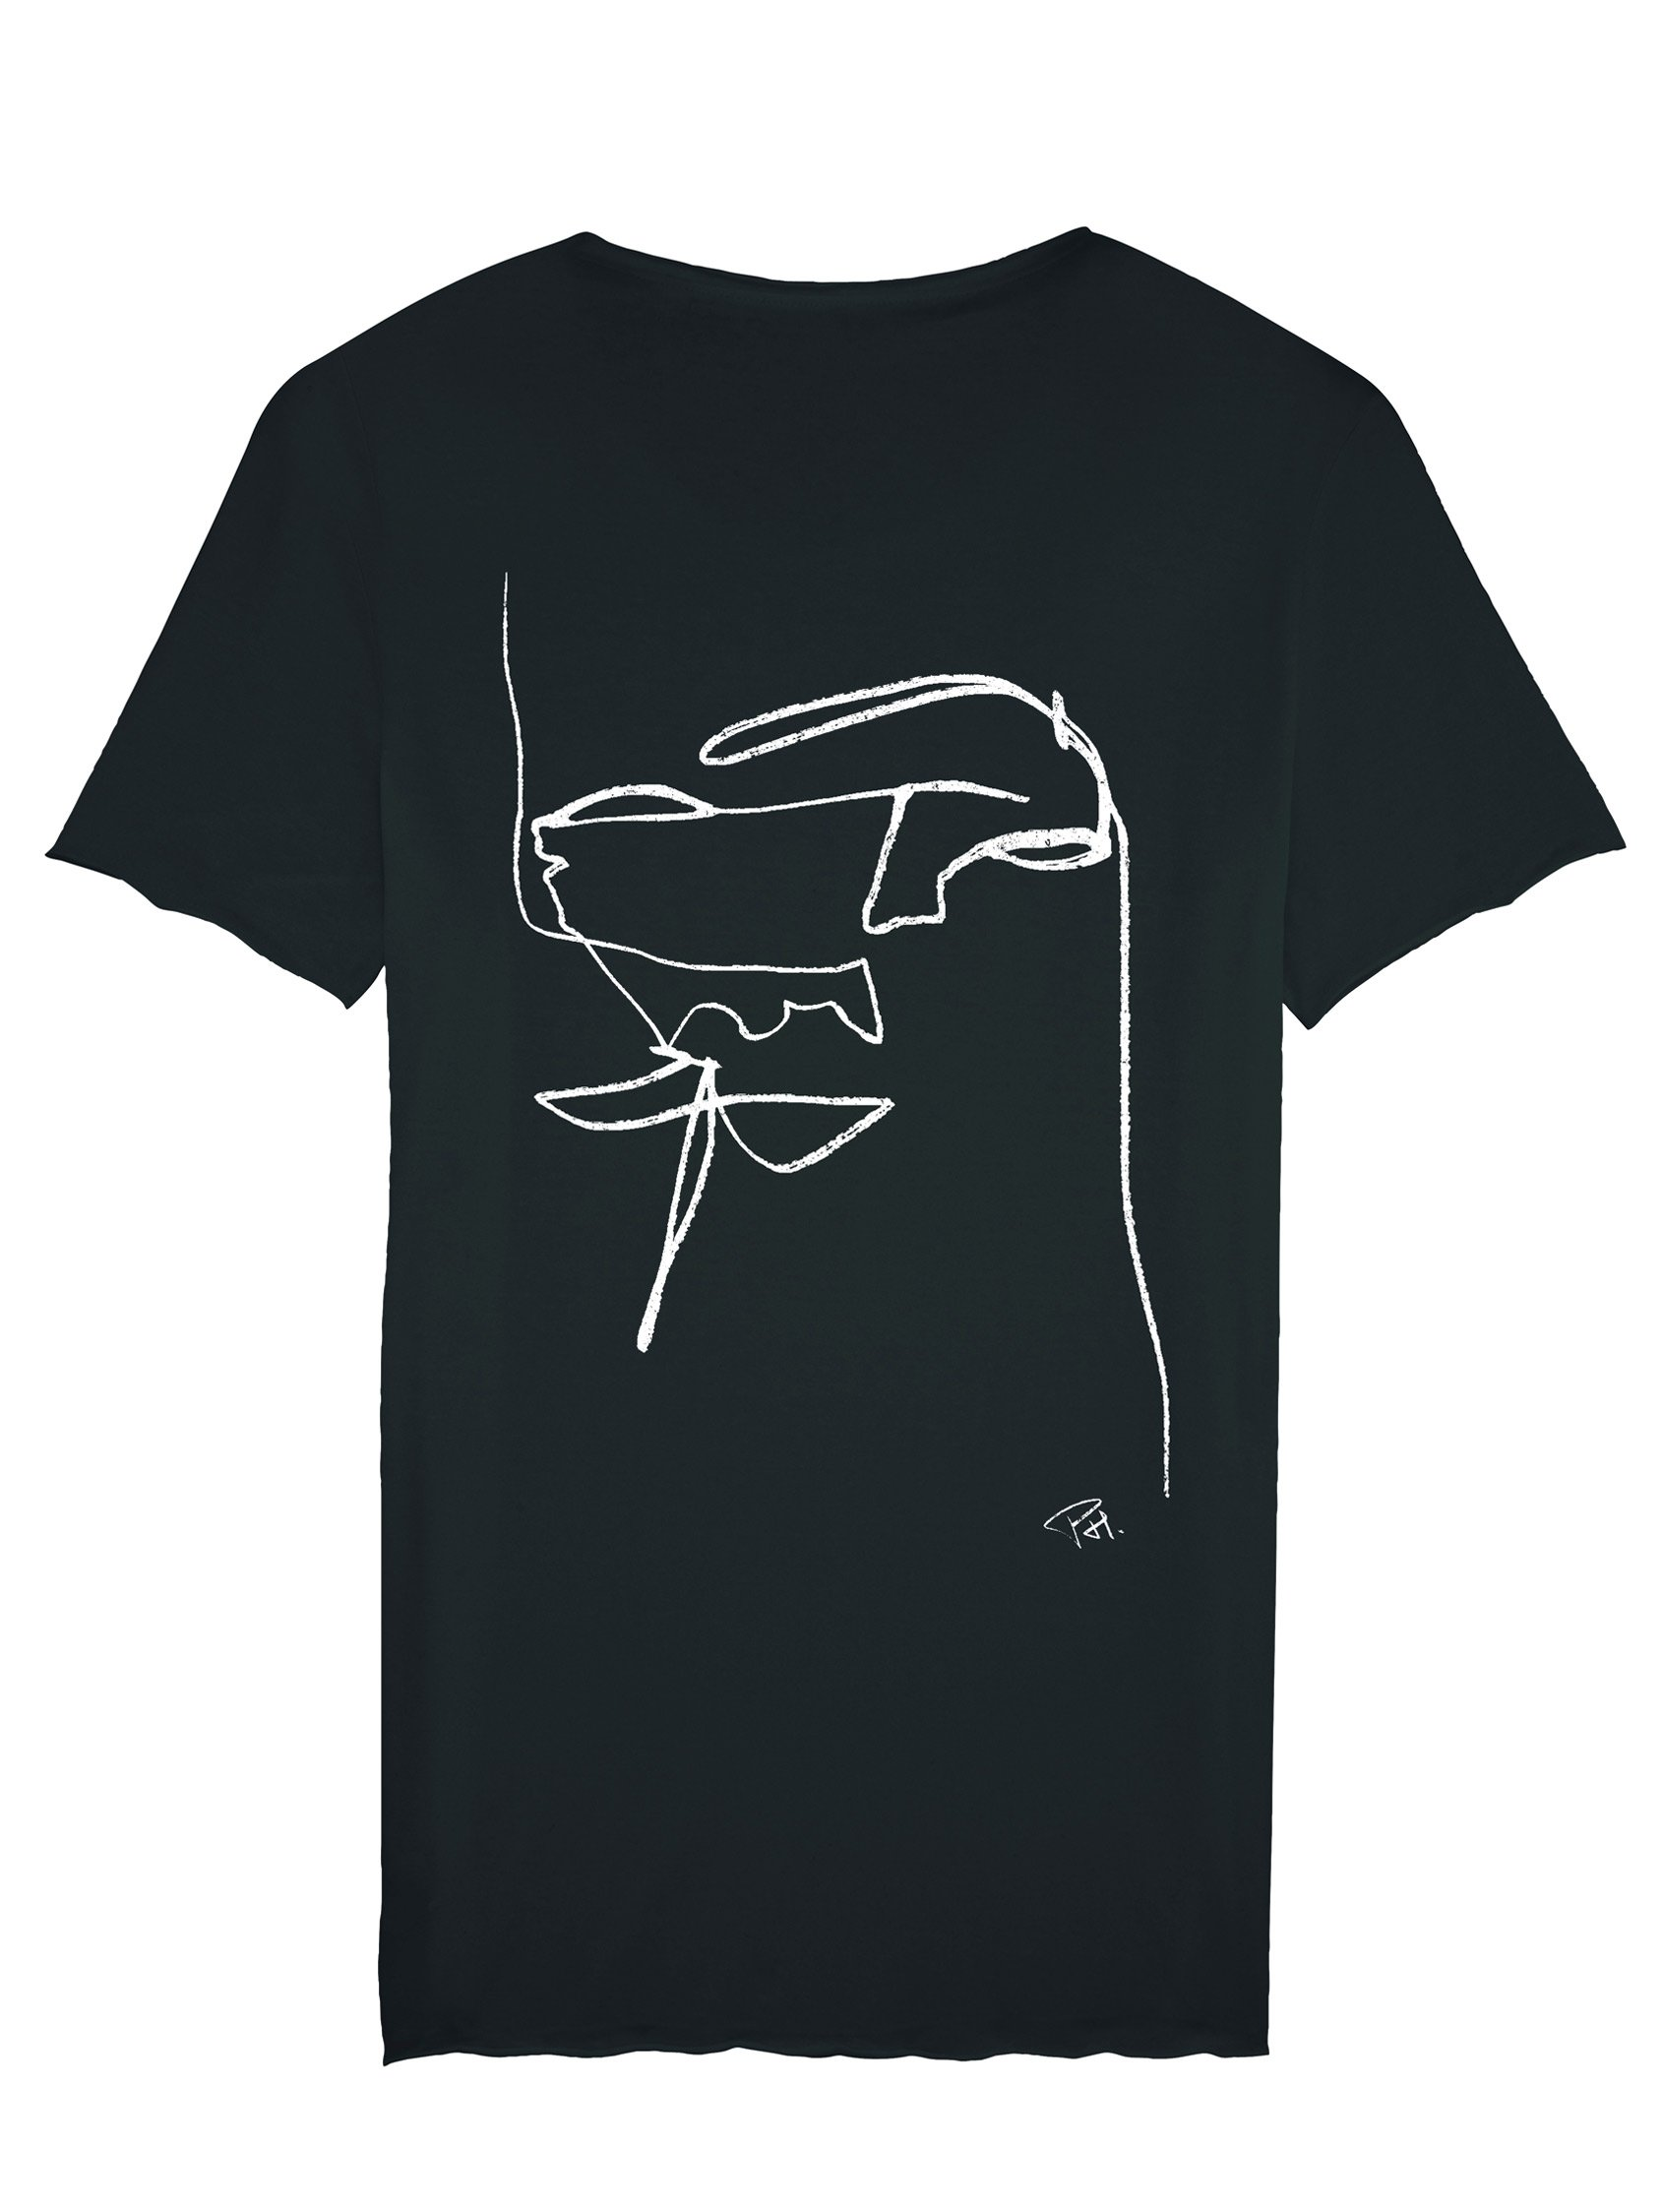 Anthropomorph Tee from Noumenon